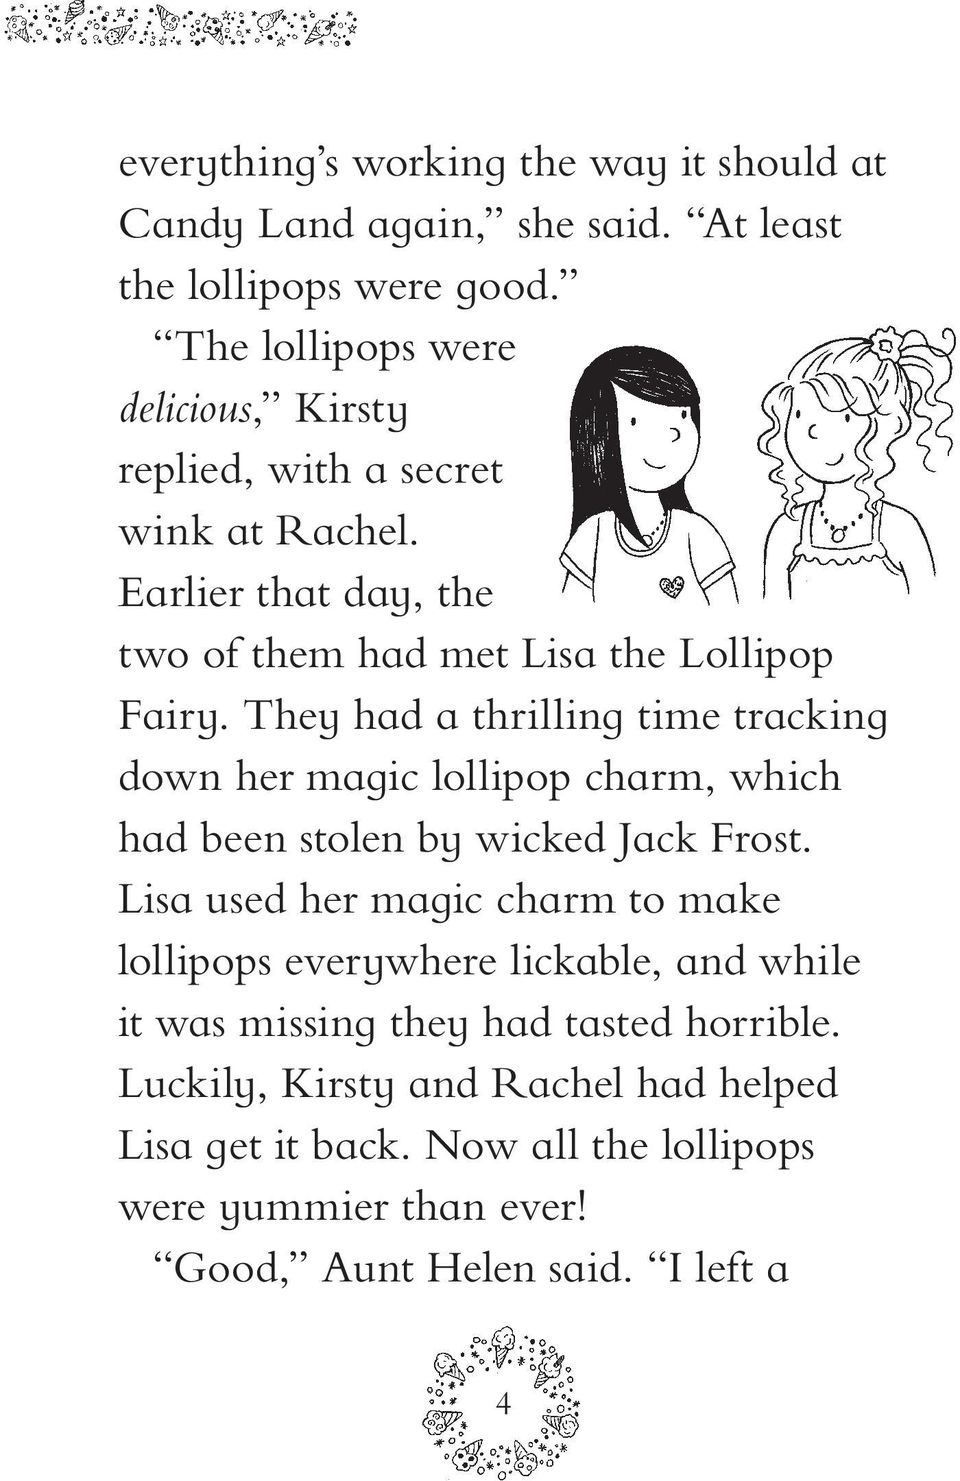 They had a thrilling time tracking down her magic lollipop charm, which had been stolen by wicked Jack Frost.